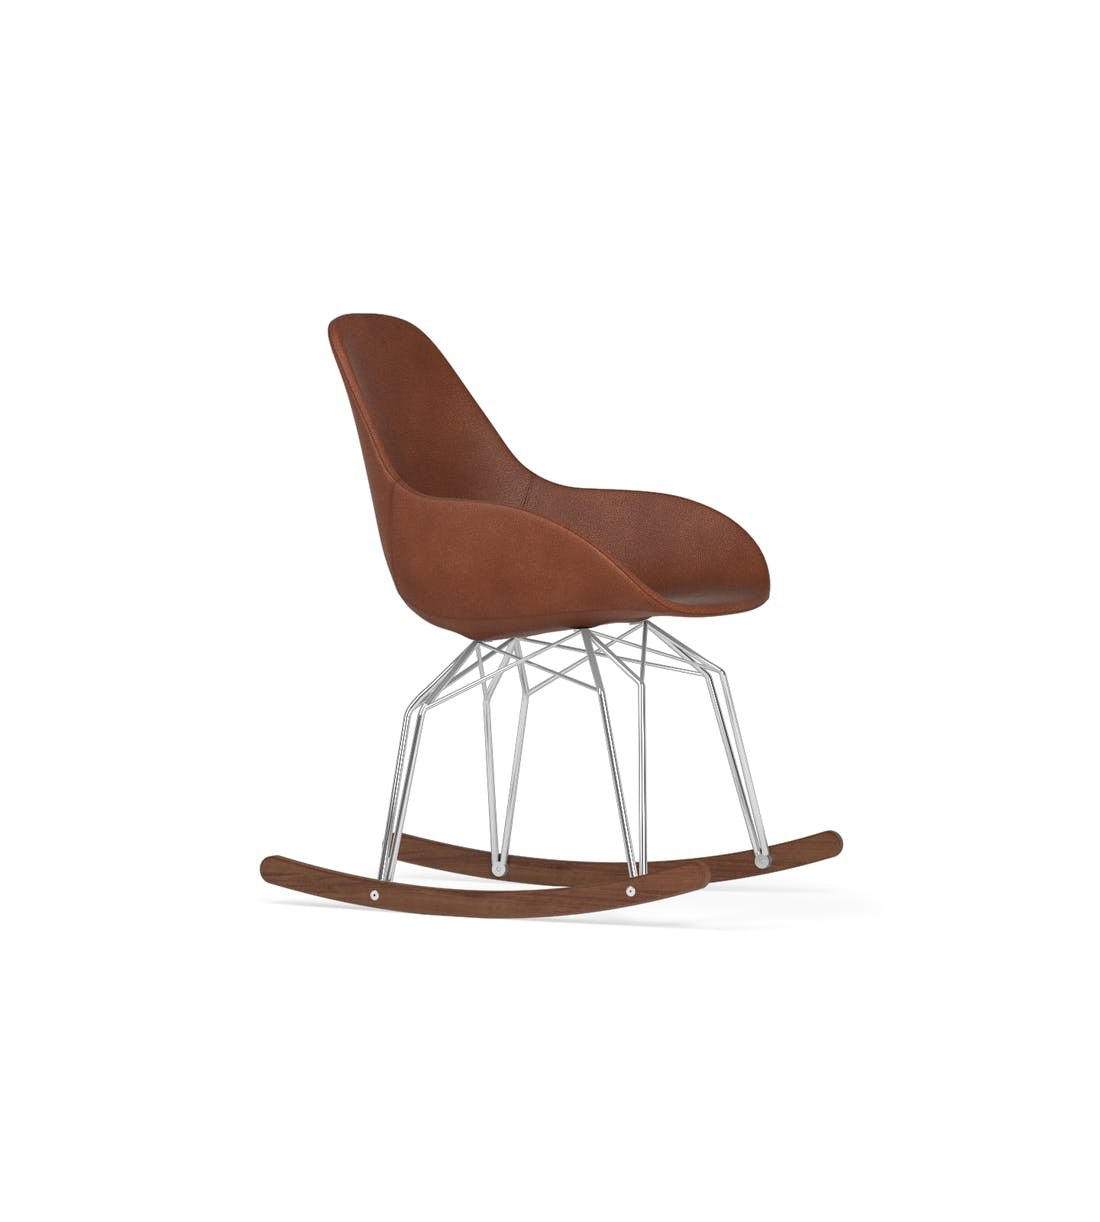 Kubikoff design chair 1402cw dpacuoio